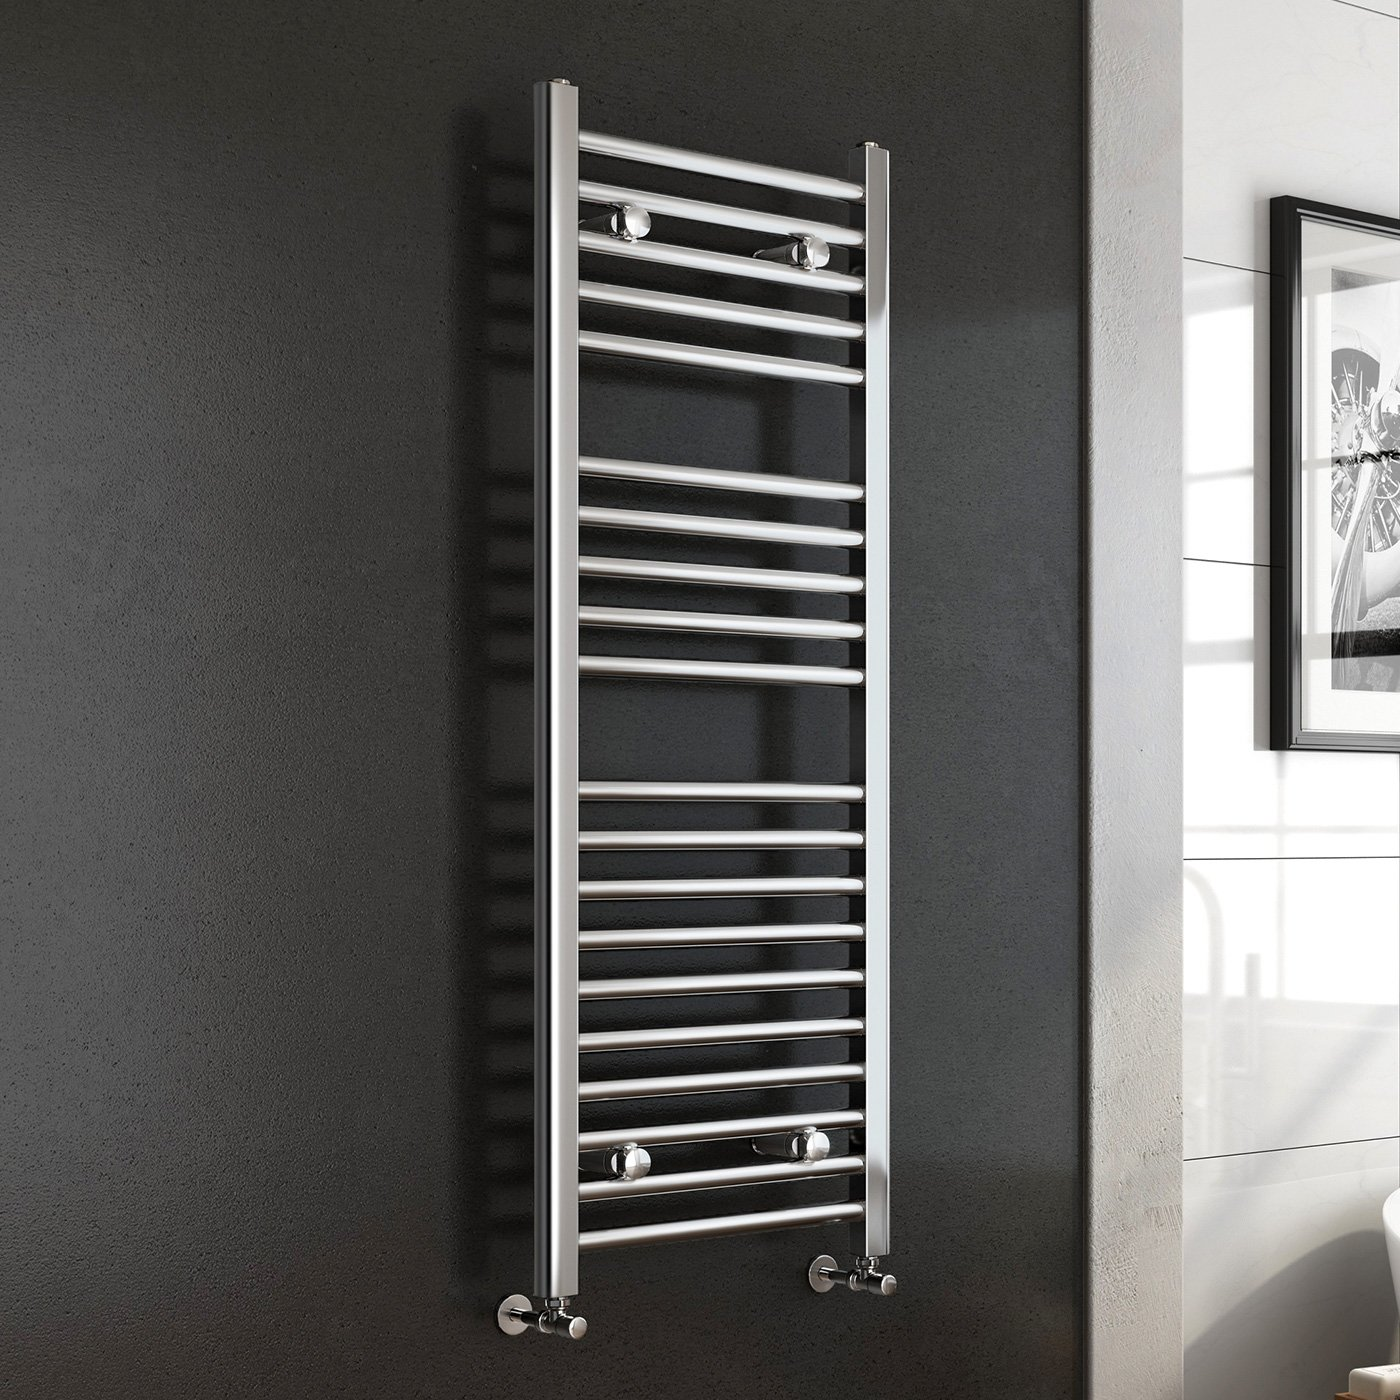 Natasha ladder rail straight modern electric towel radiator in chrome - Ibathuk 1200 X 450 Premium Straight Heated Towel Rail Chrome Bathroom Radiator All Sizes Ibathuk Amazon Co Uk Diy Tools